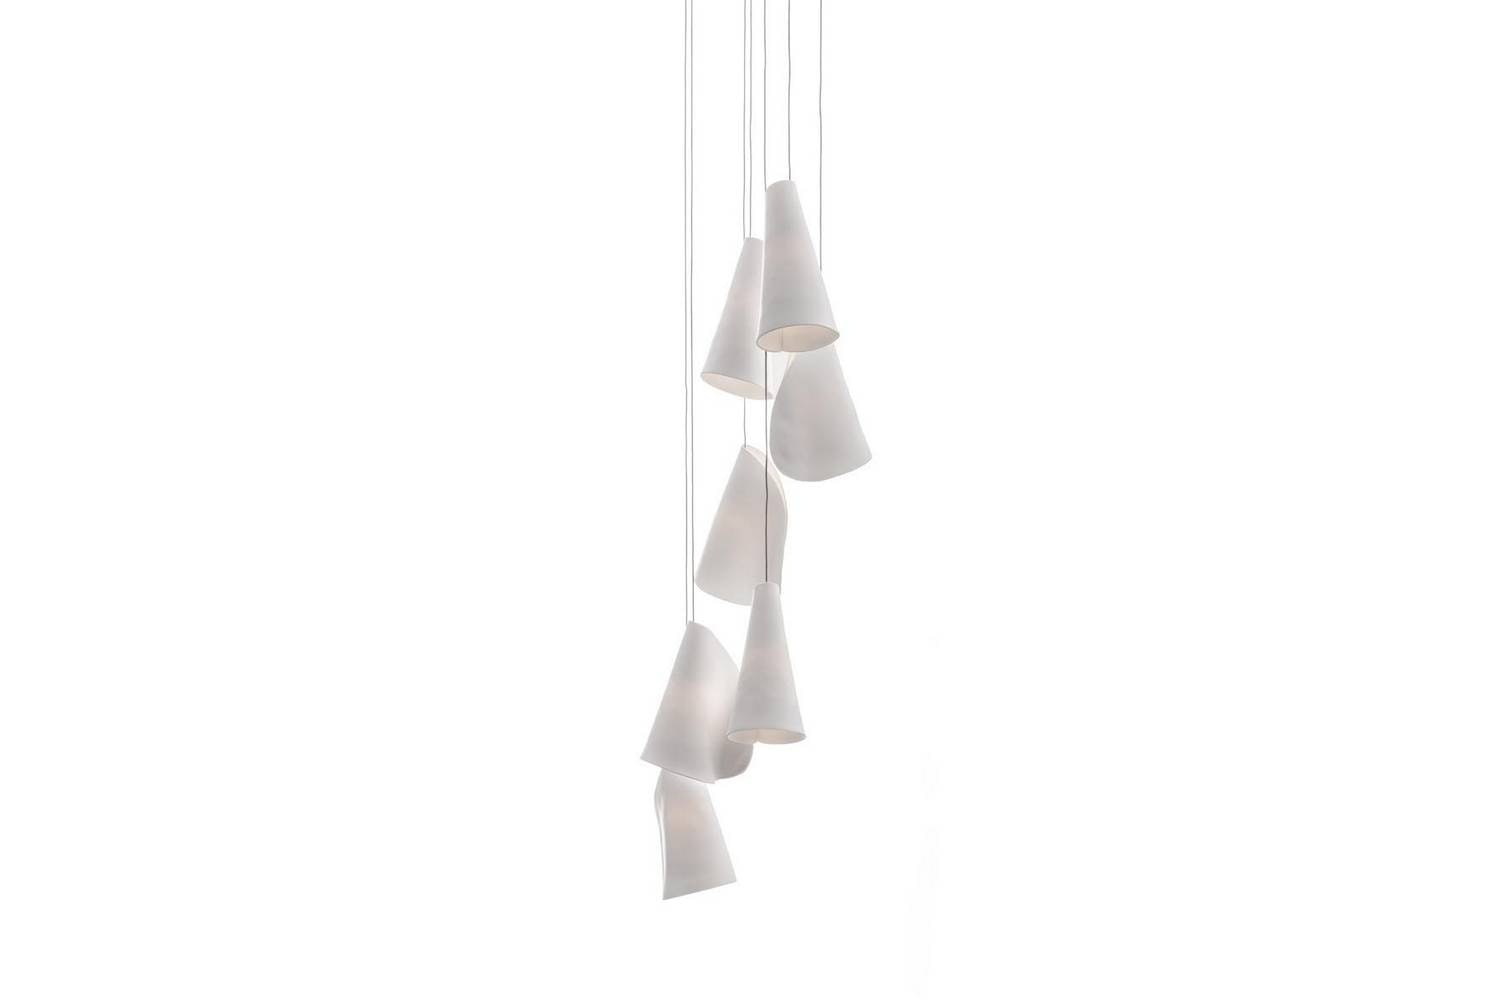 21.7 Standard Suspension Lamp by Omer Arbel for Bocci